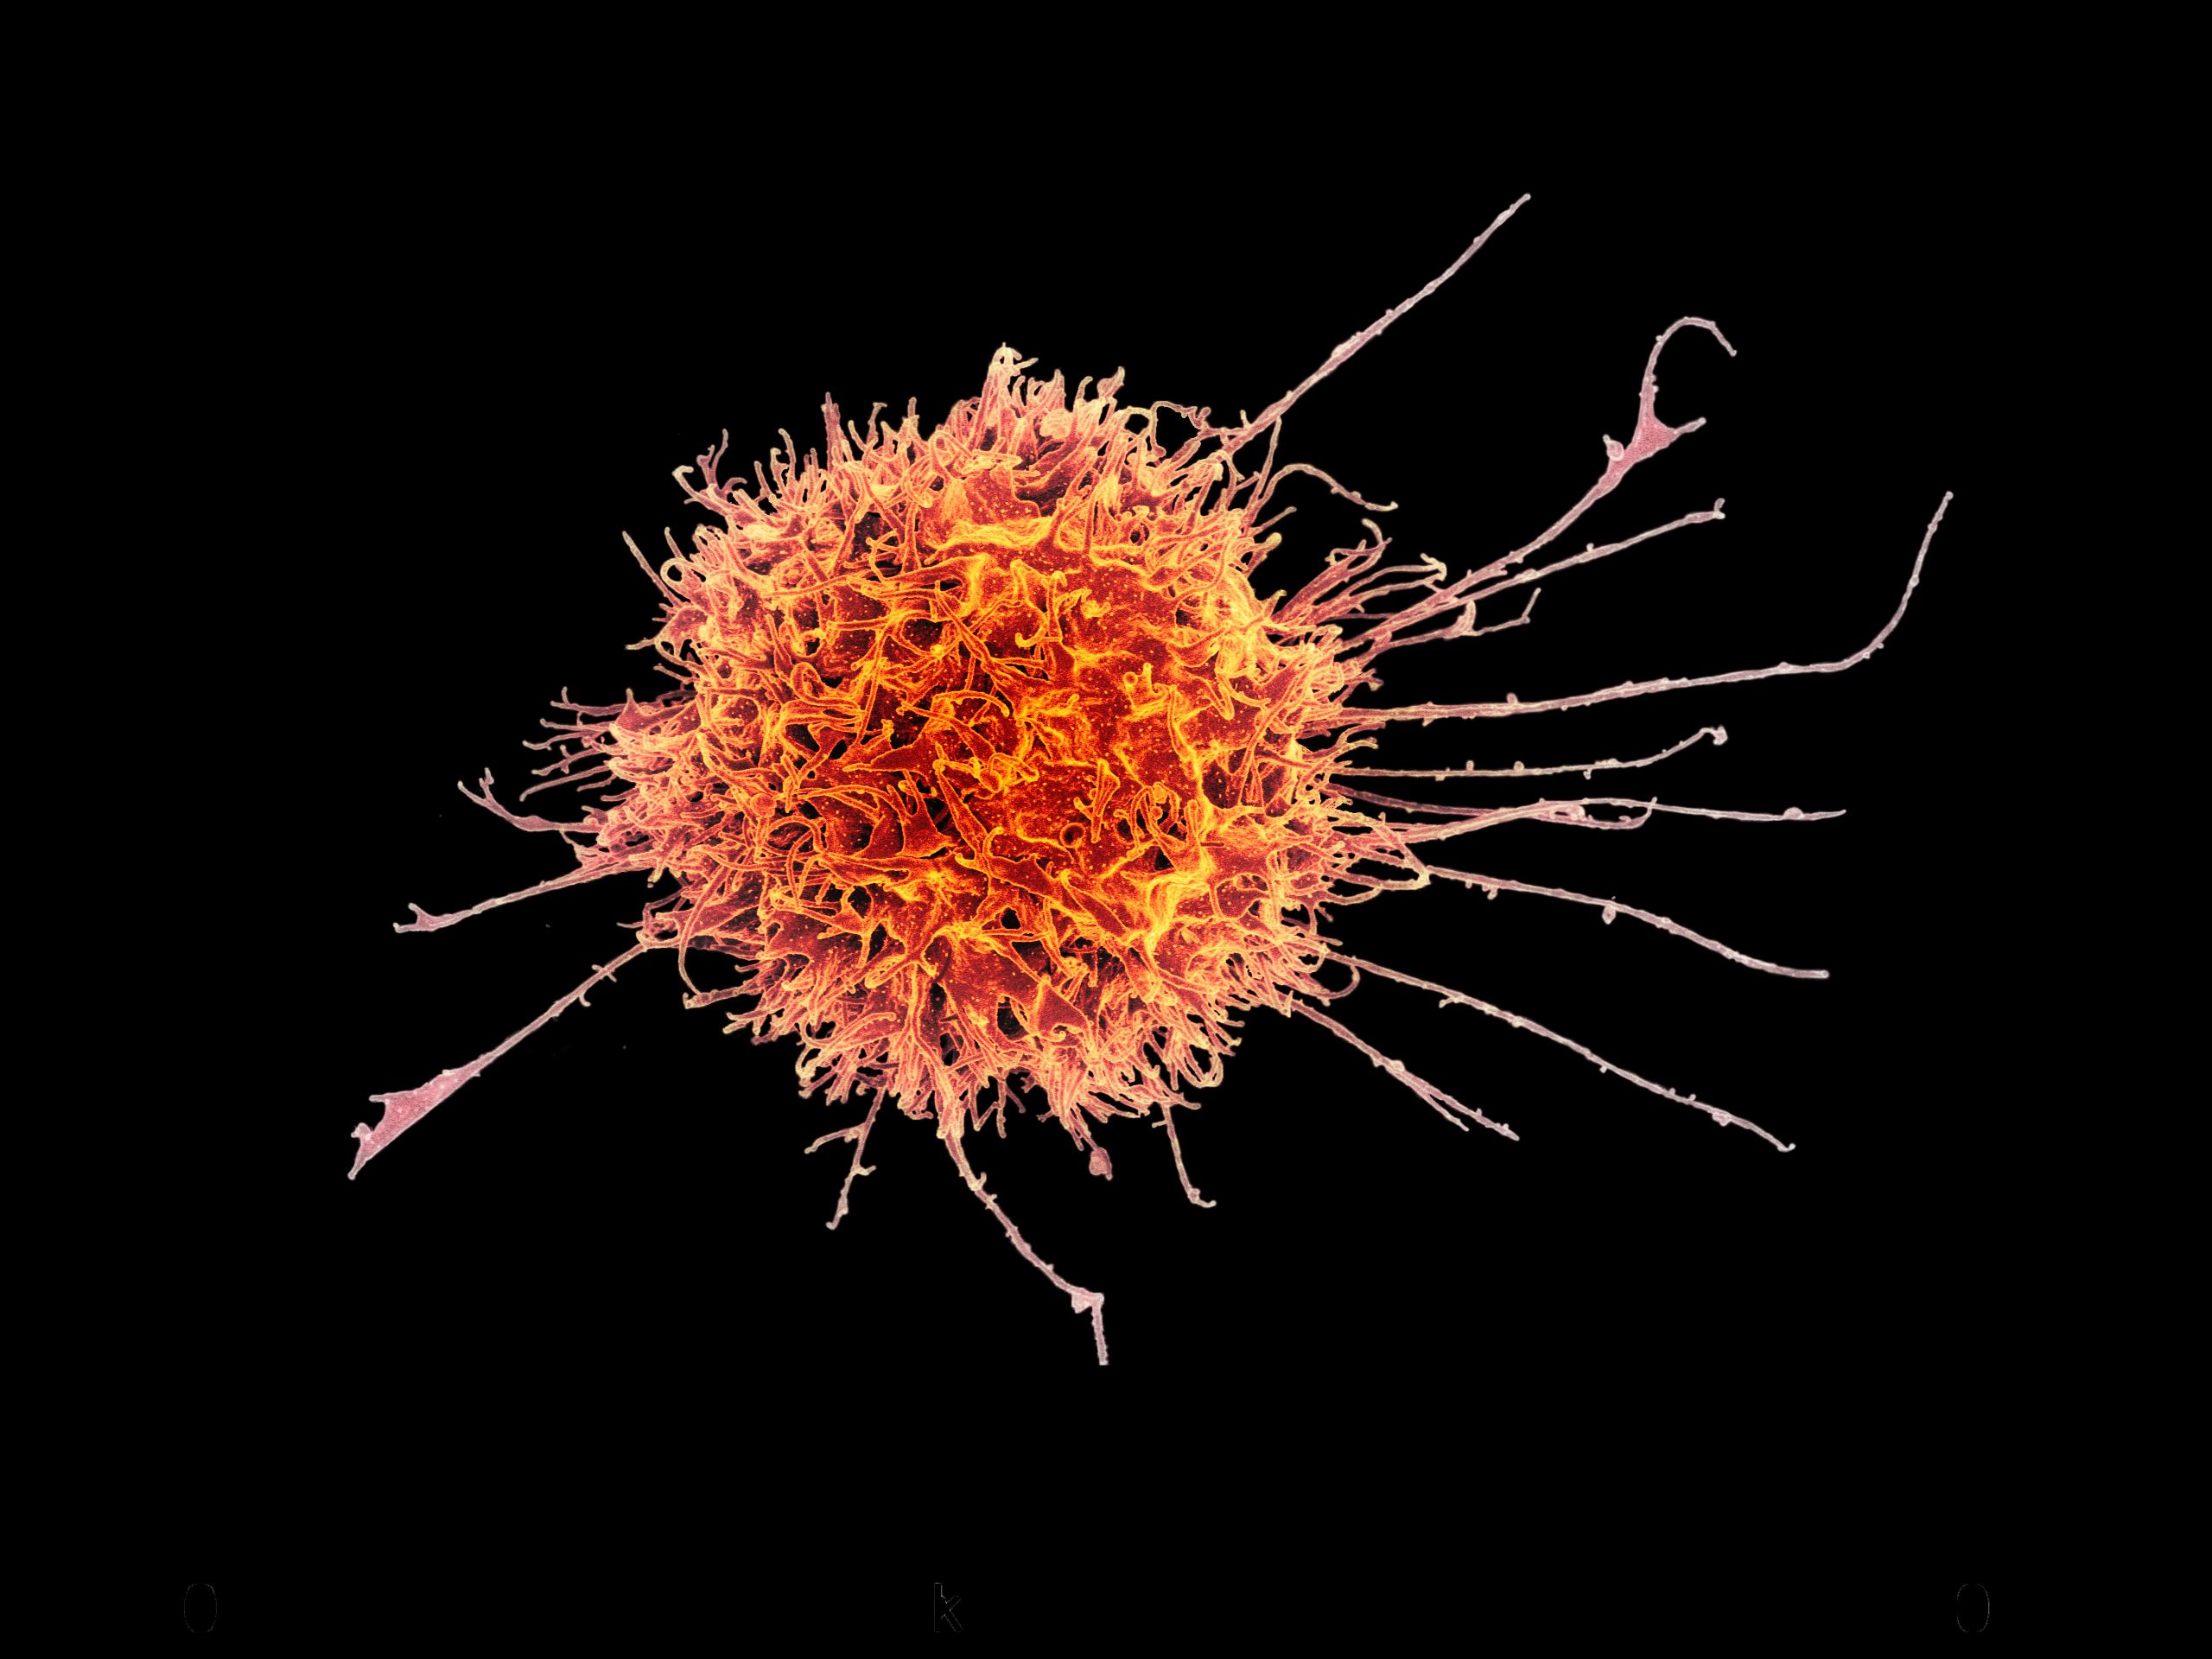 An electron micrograph has been colorized to show a spiny, tumbleweed-like natural killer cell in orange.